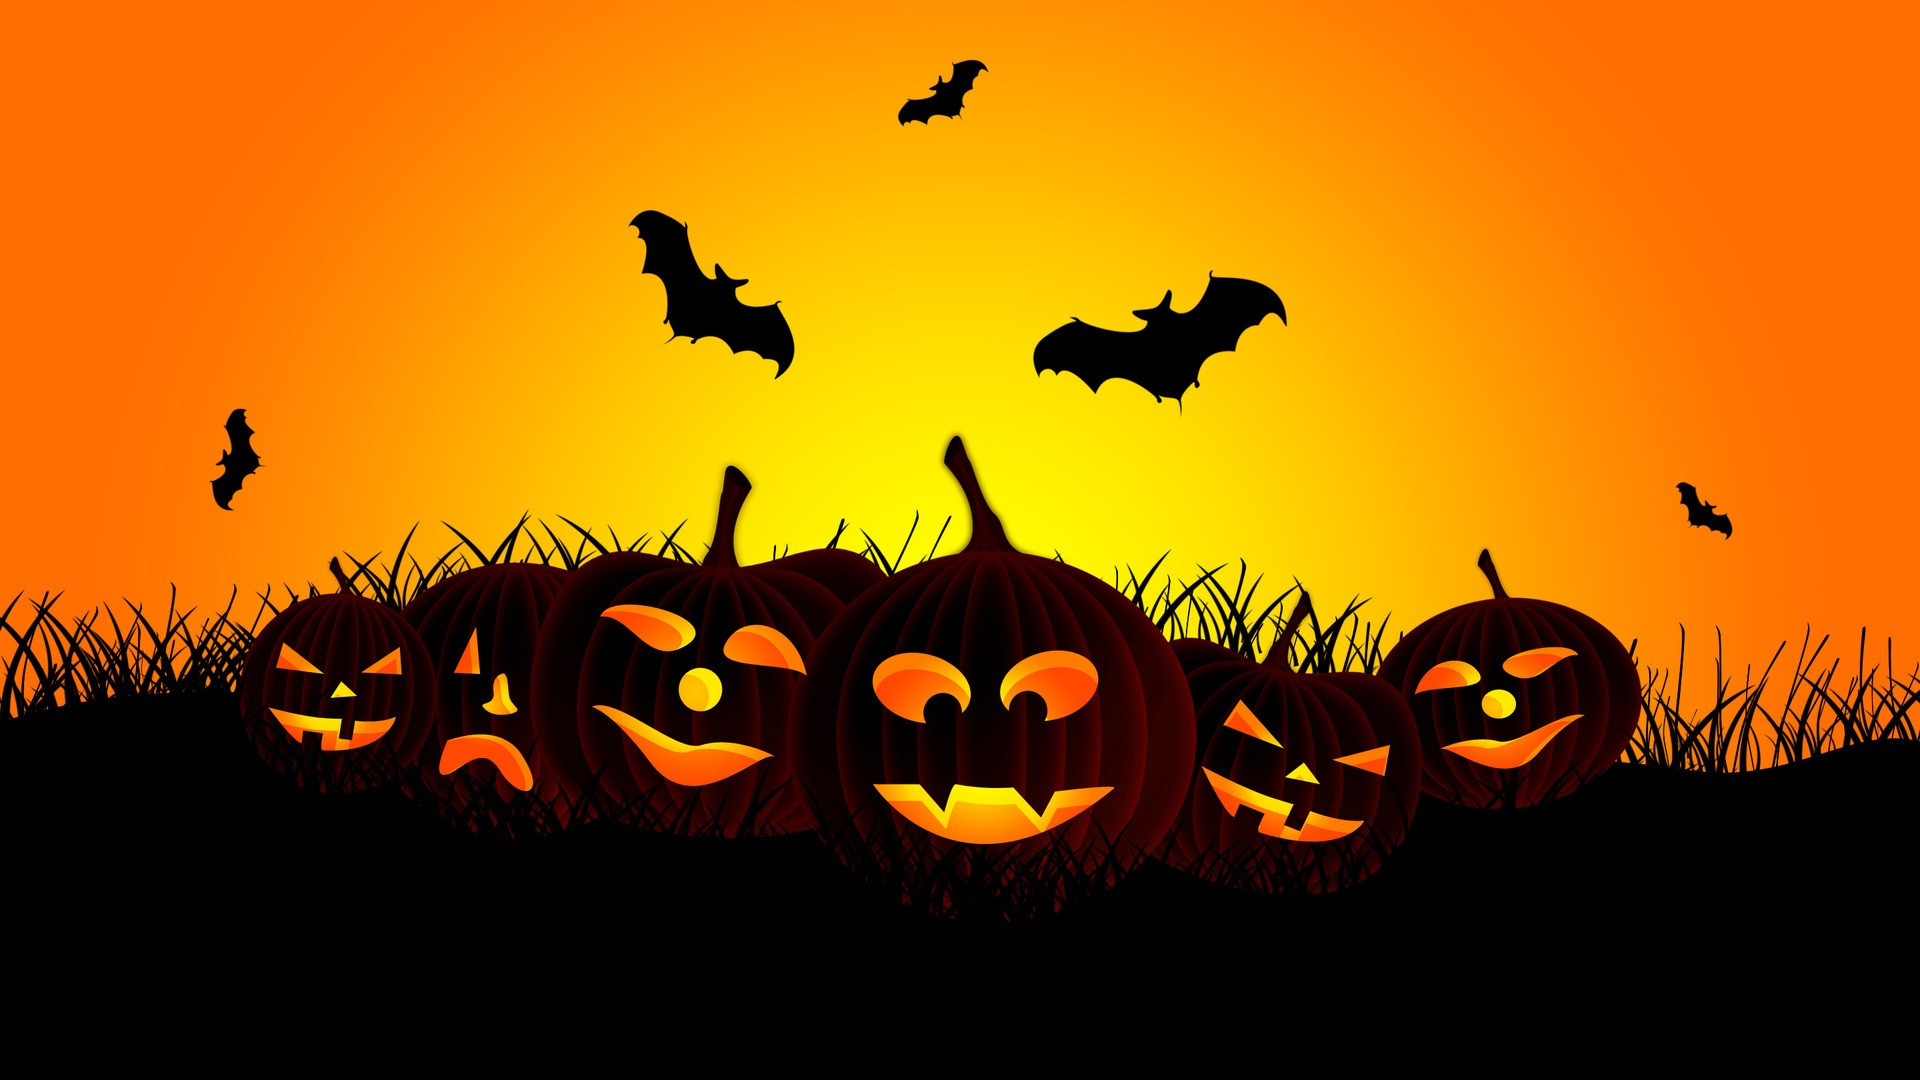 Other Wallpaper: Happy Halloween Wallpapers Images for HD